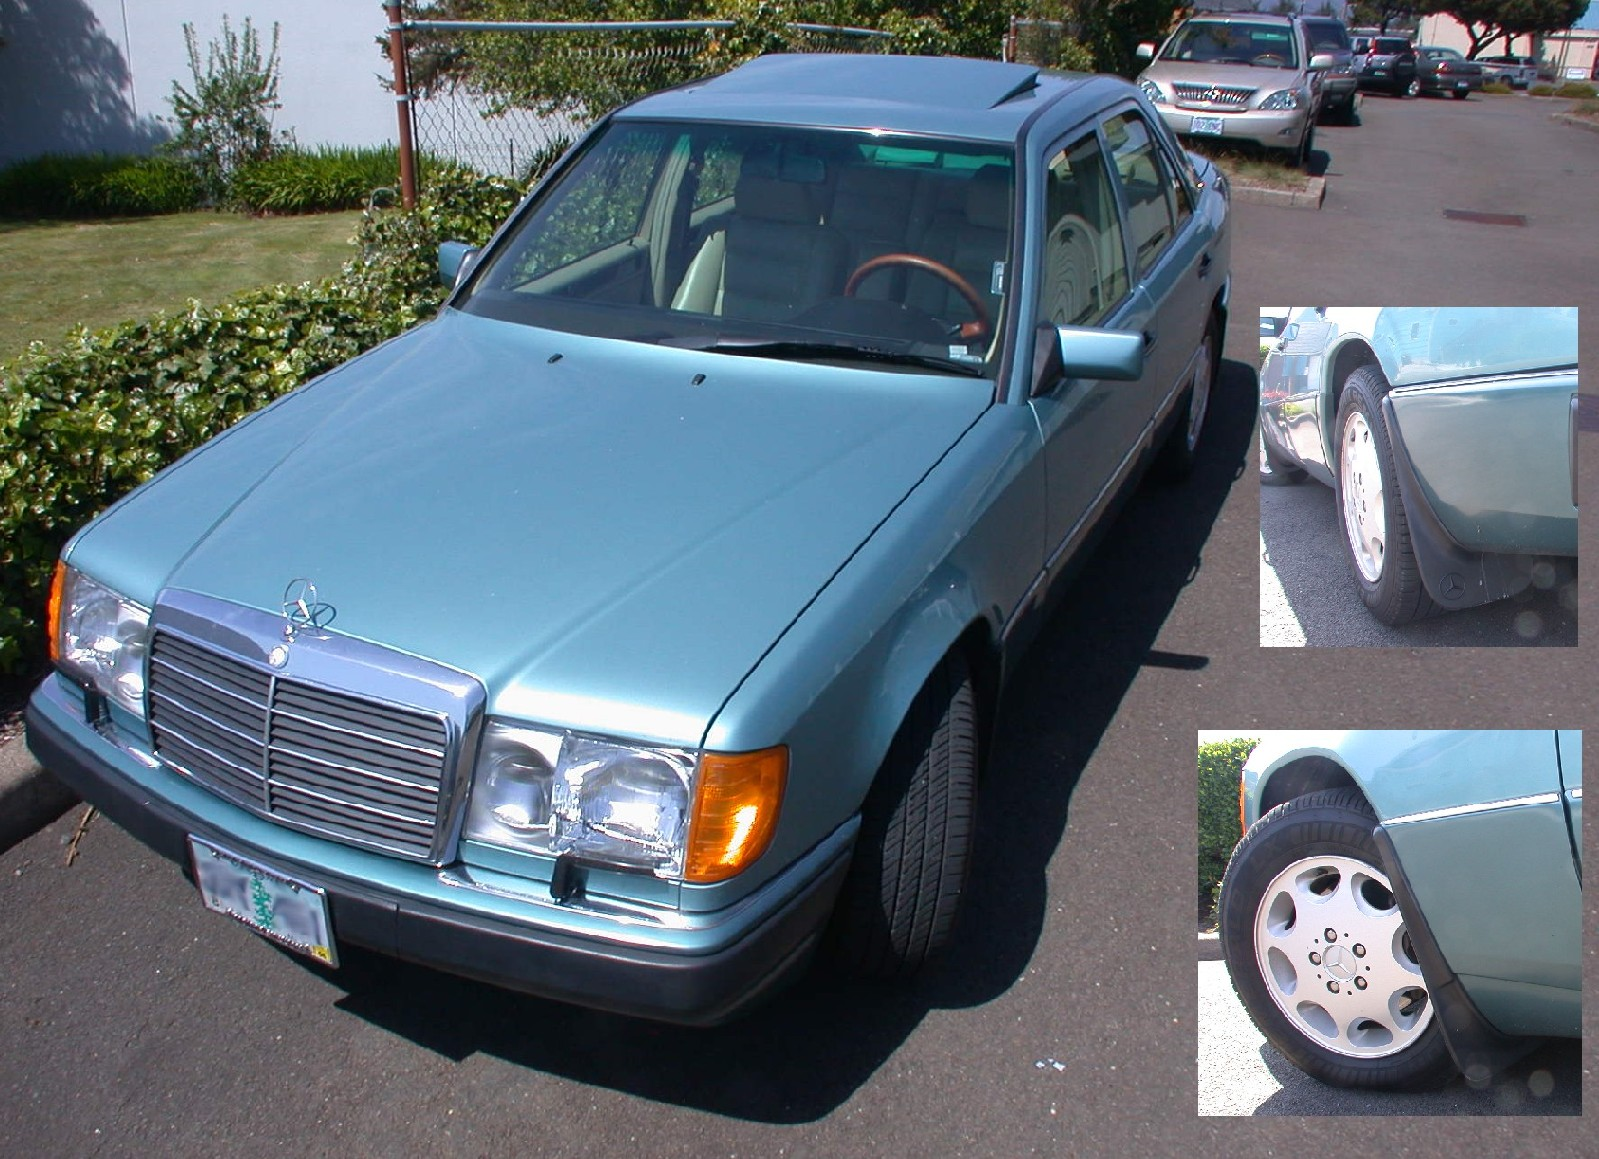 Muflaps for '95 w124?